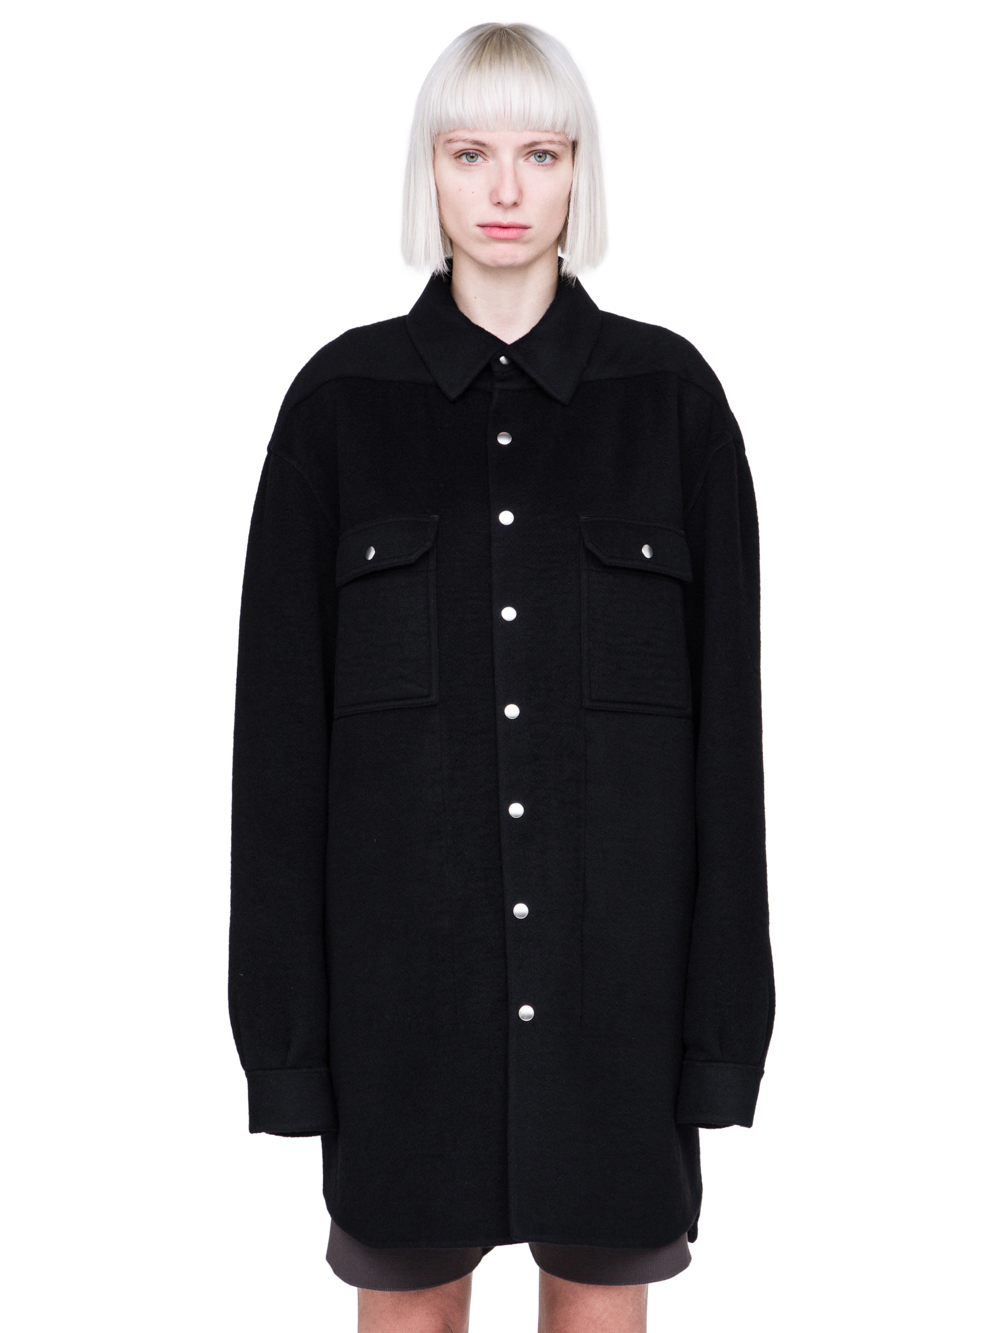 RICK OWENS FW18 SISYPHUS OFF-THE-RUNWAY OVERSIZED OUTERSHIRT IN BLACK CASHMERE